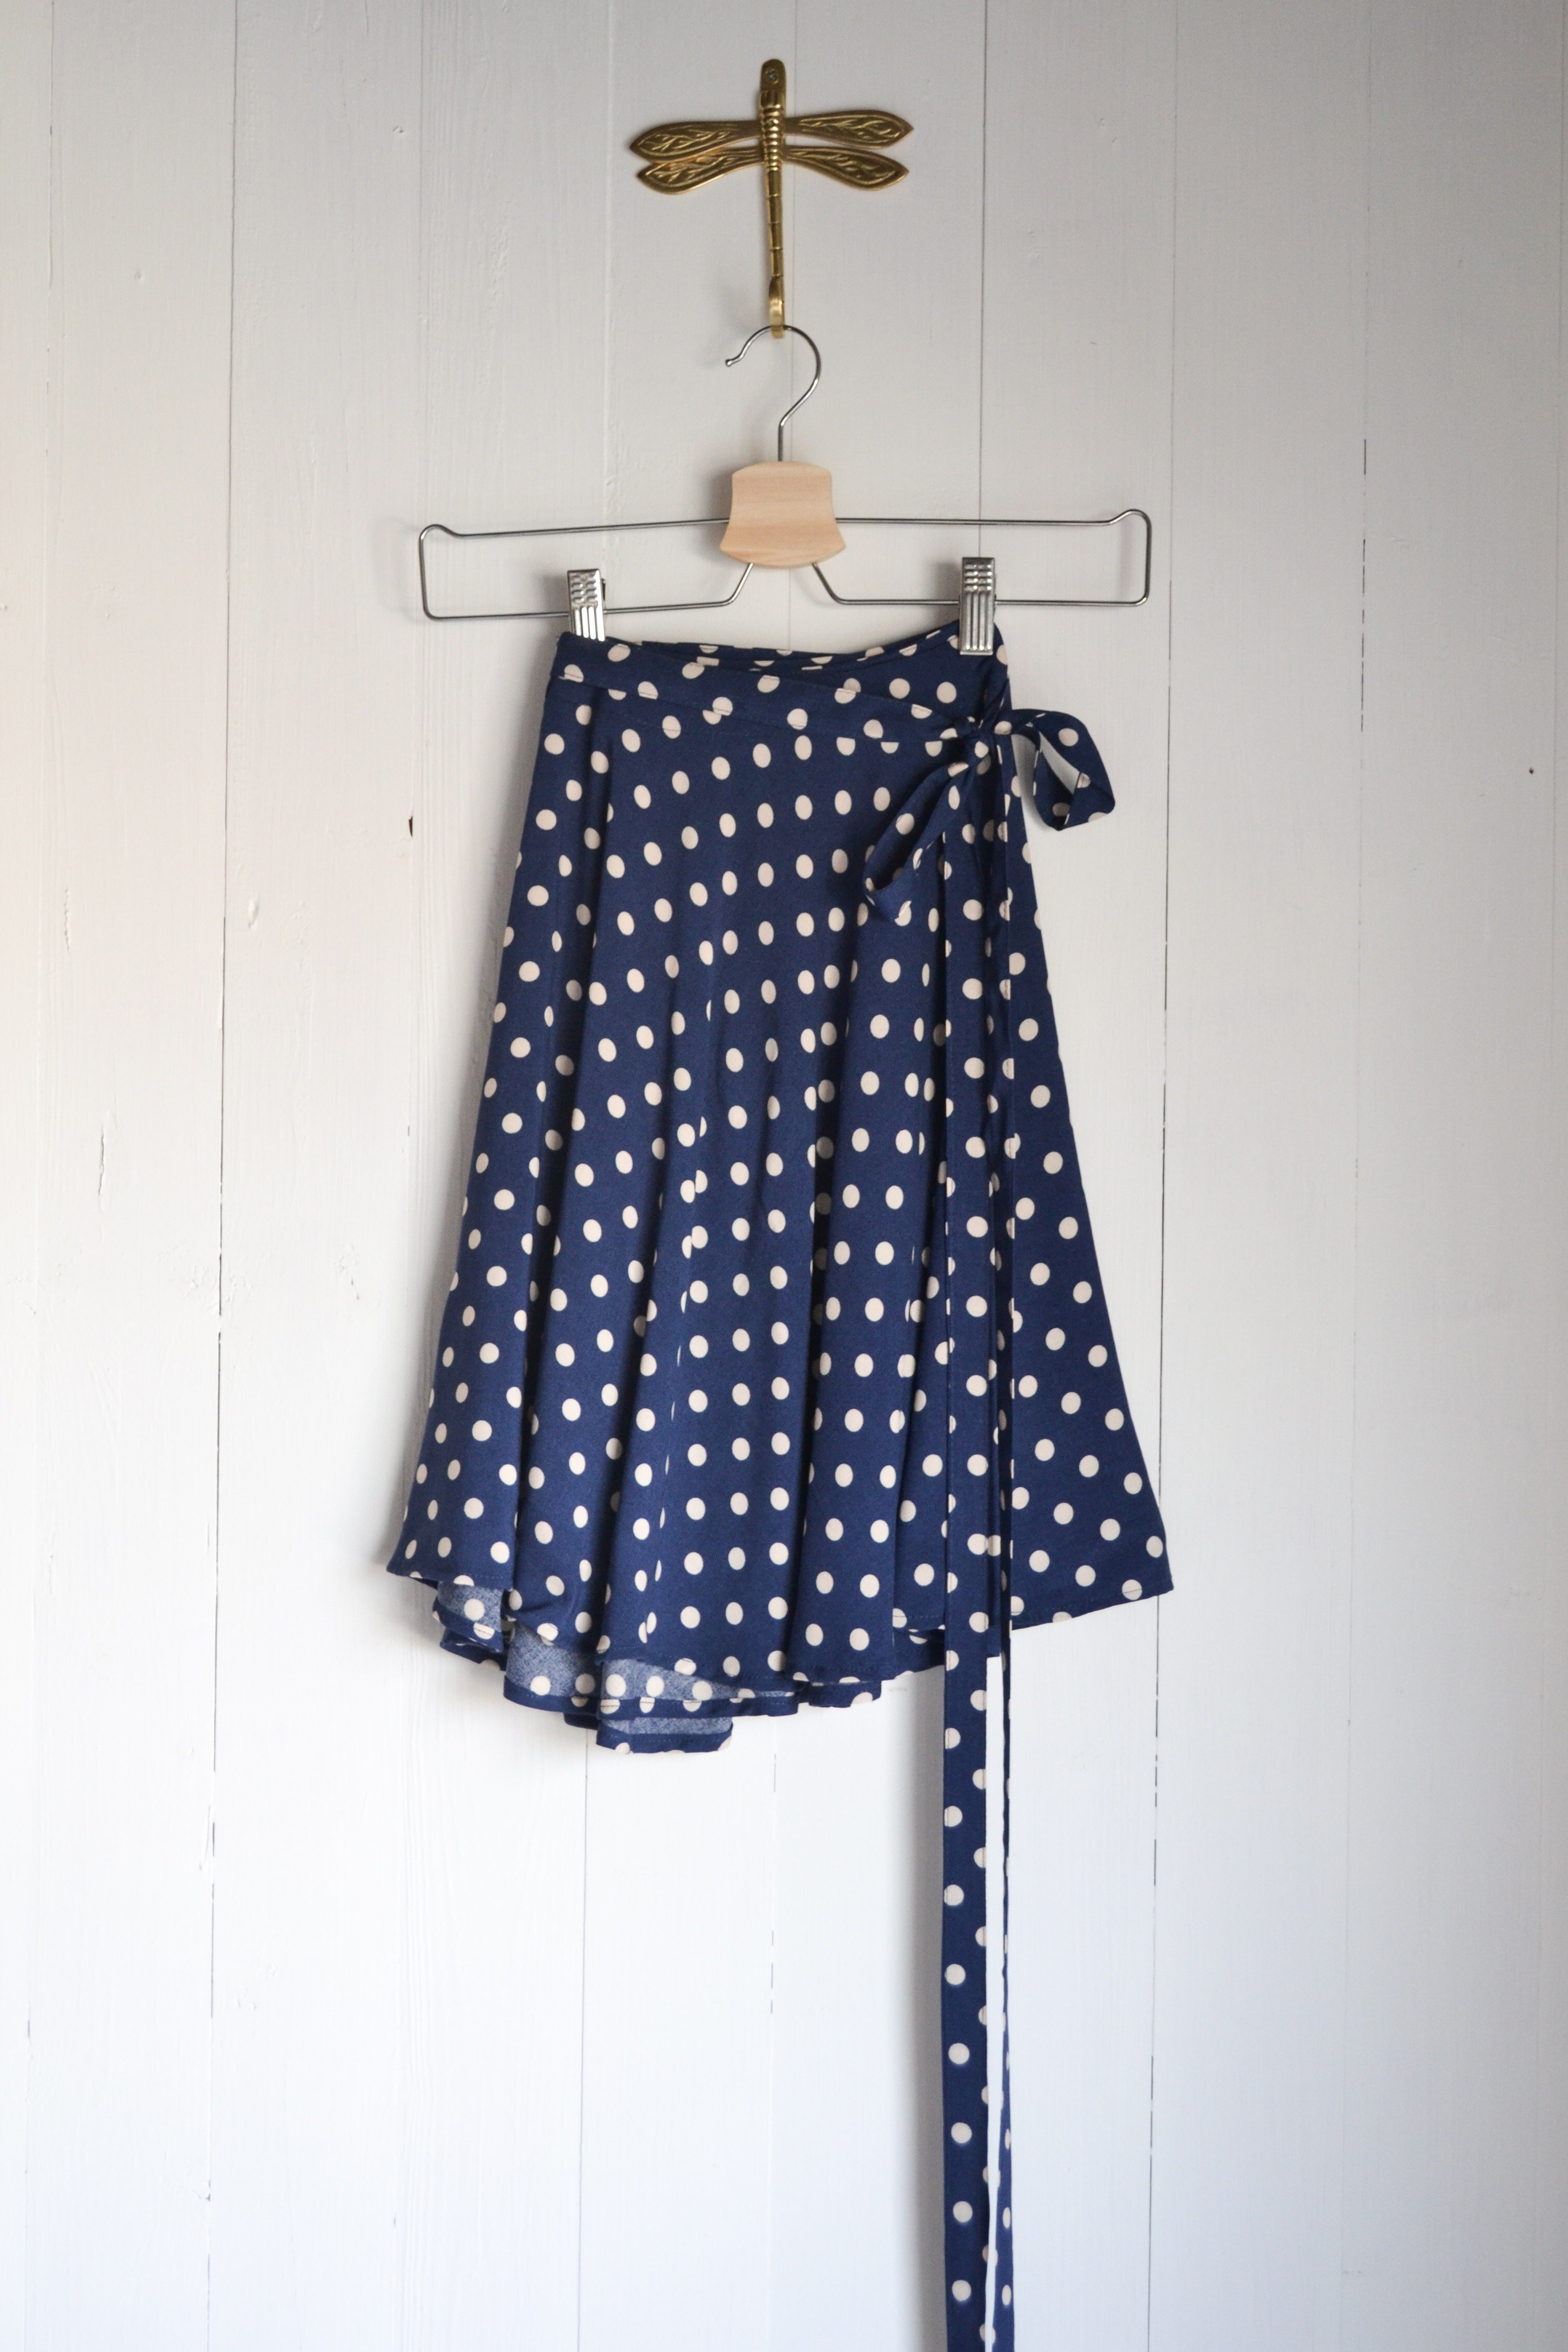 ULTIMATE SKIRT - BLUE WITH WHITE DOTS